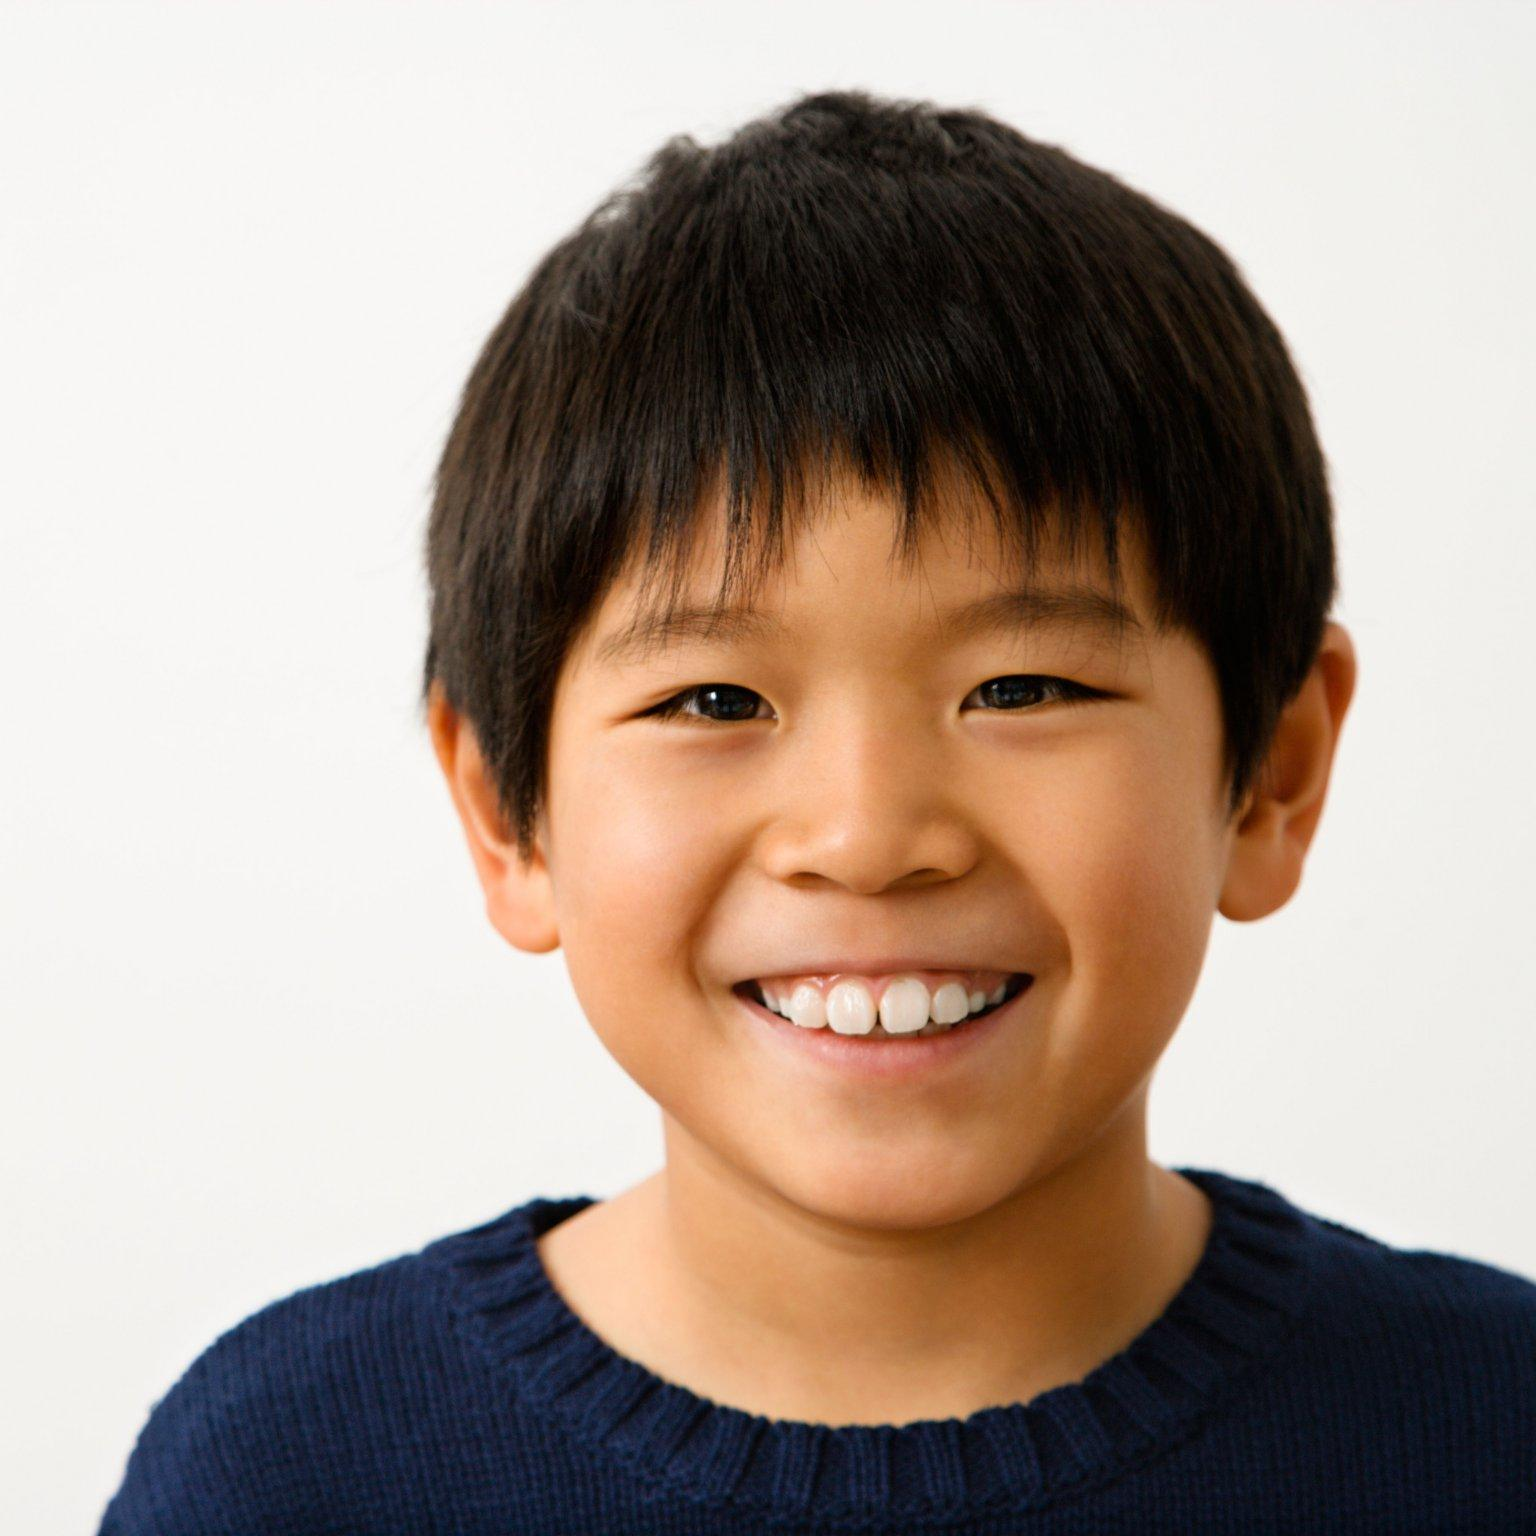 XDKY6P Portrait of young Asian boy smiling